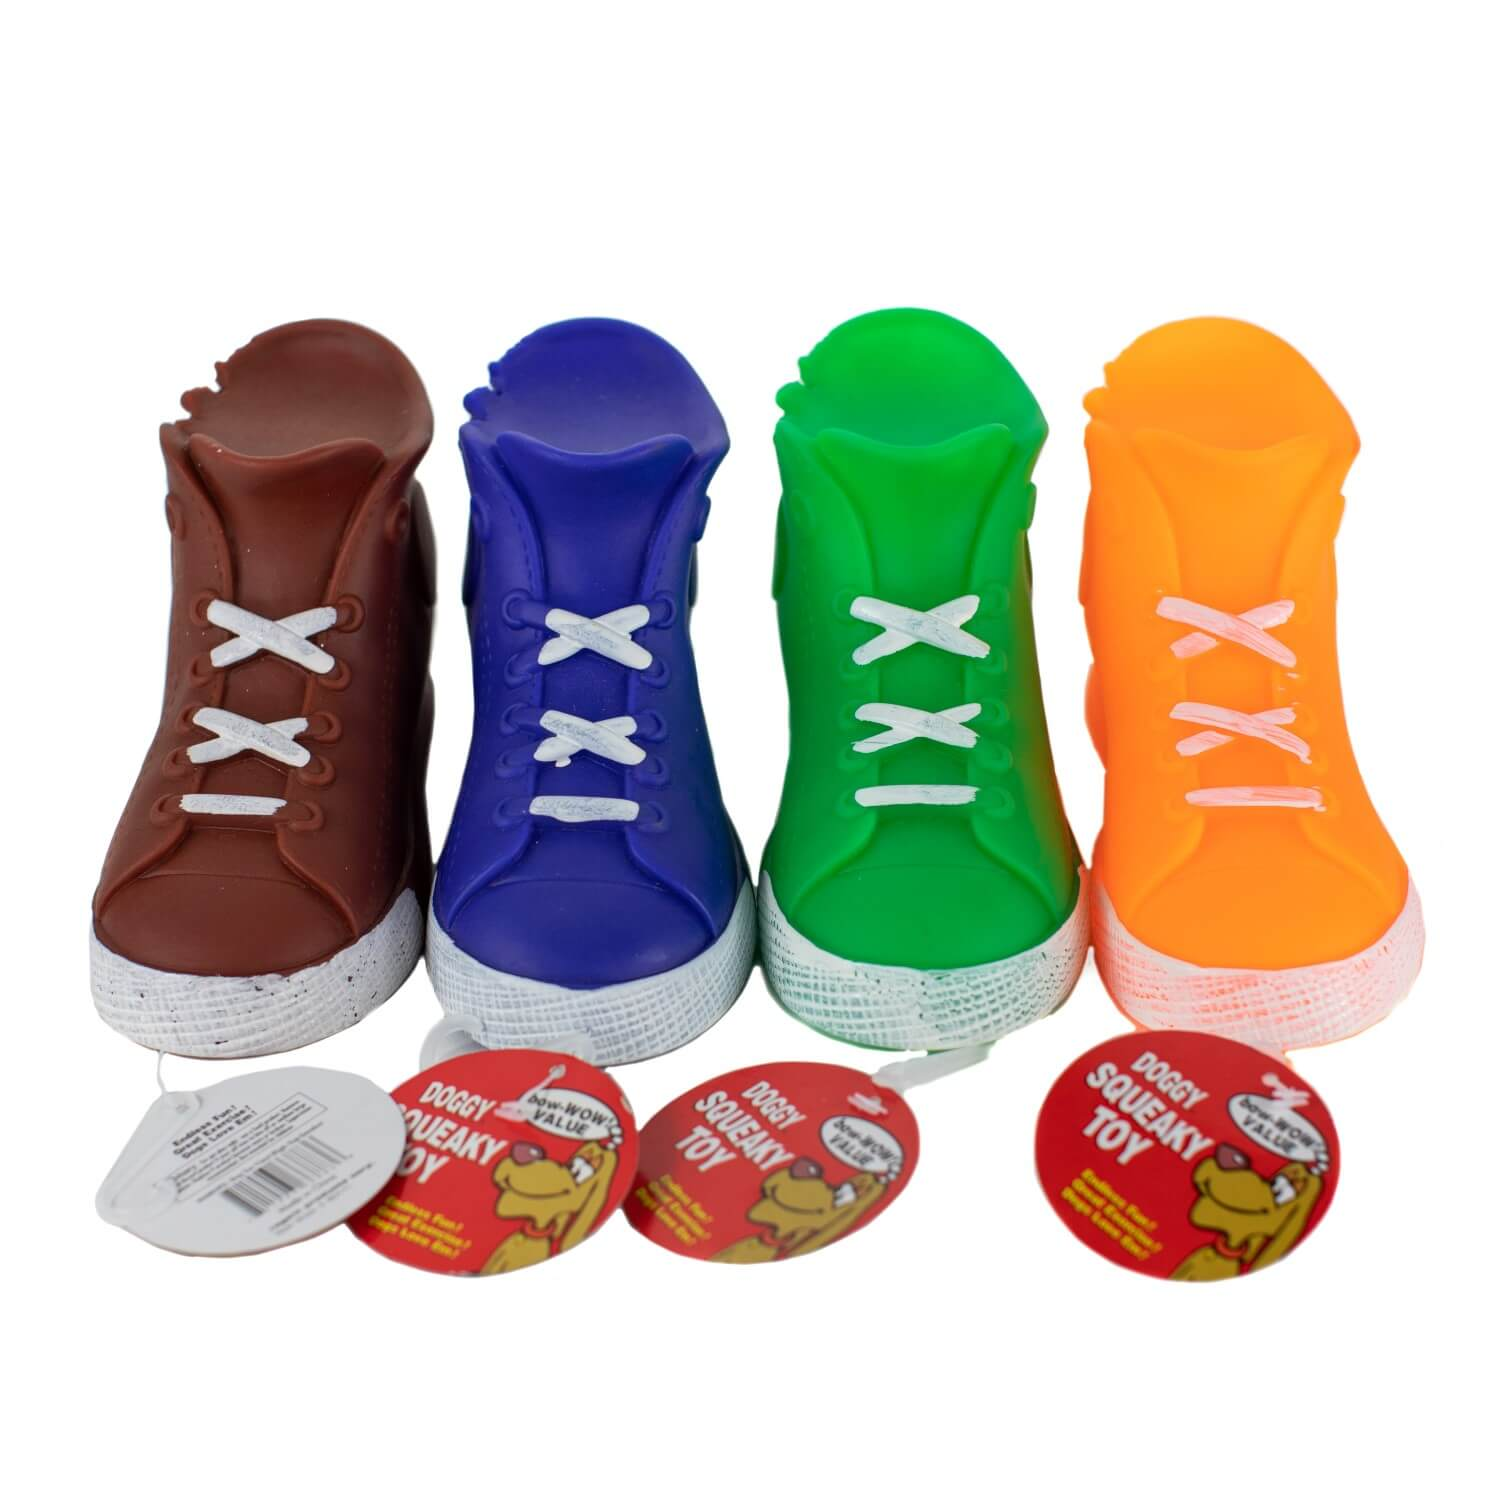 Squeaky High-Top Sneakers in Brown, Blue, Green and Orange